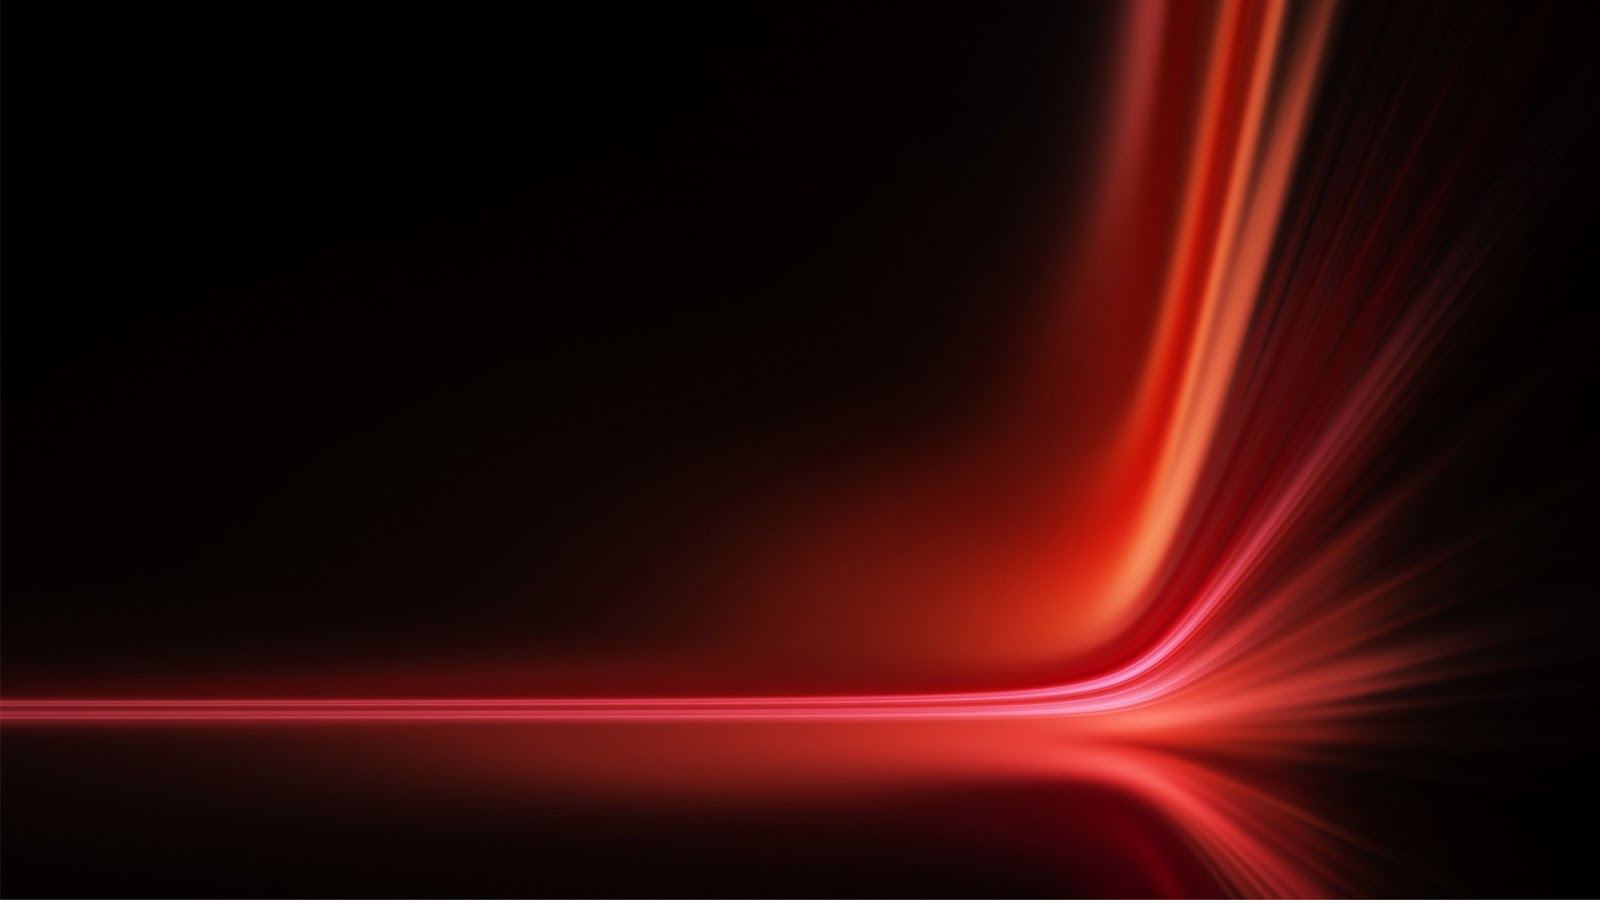 hd wallpapers 1080p abstract - photo #47